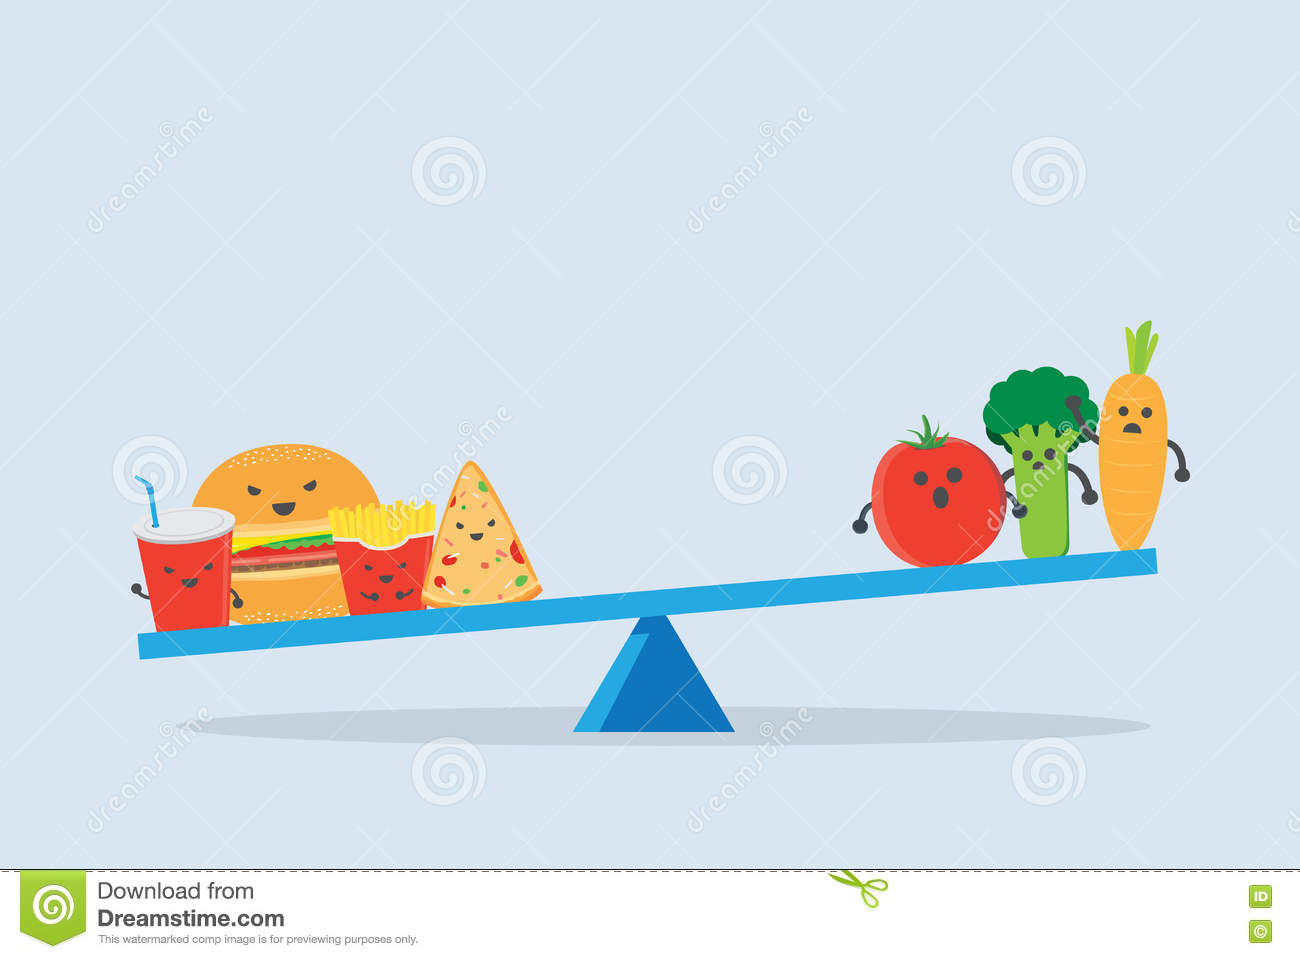 Junk Food Heavier Than Vegetable On Balance Scales Stock